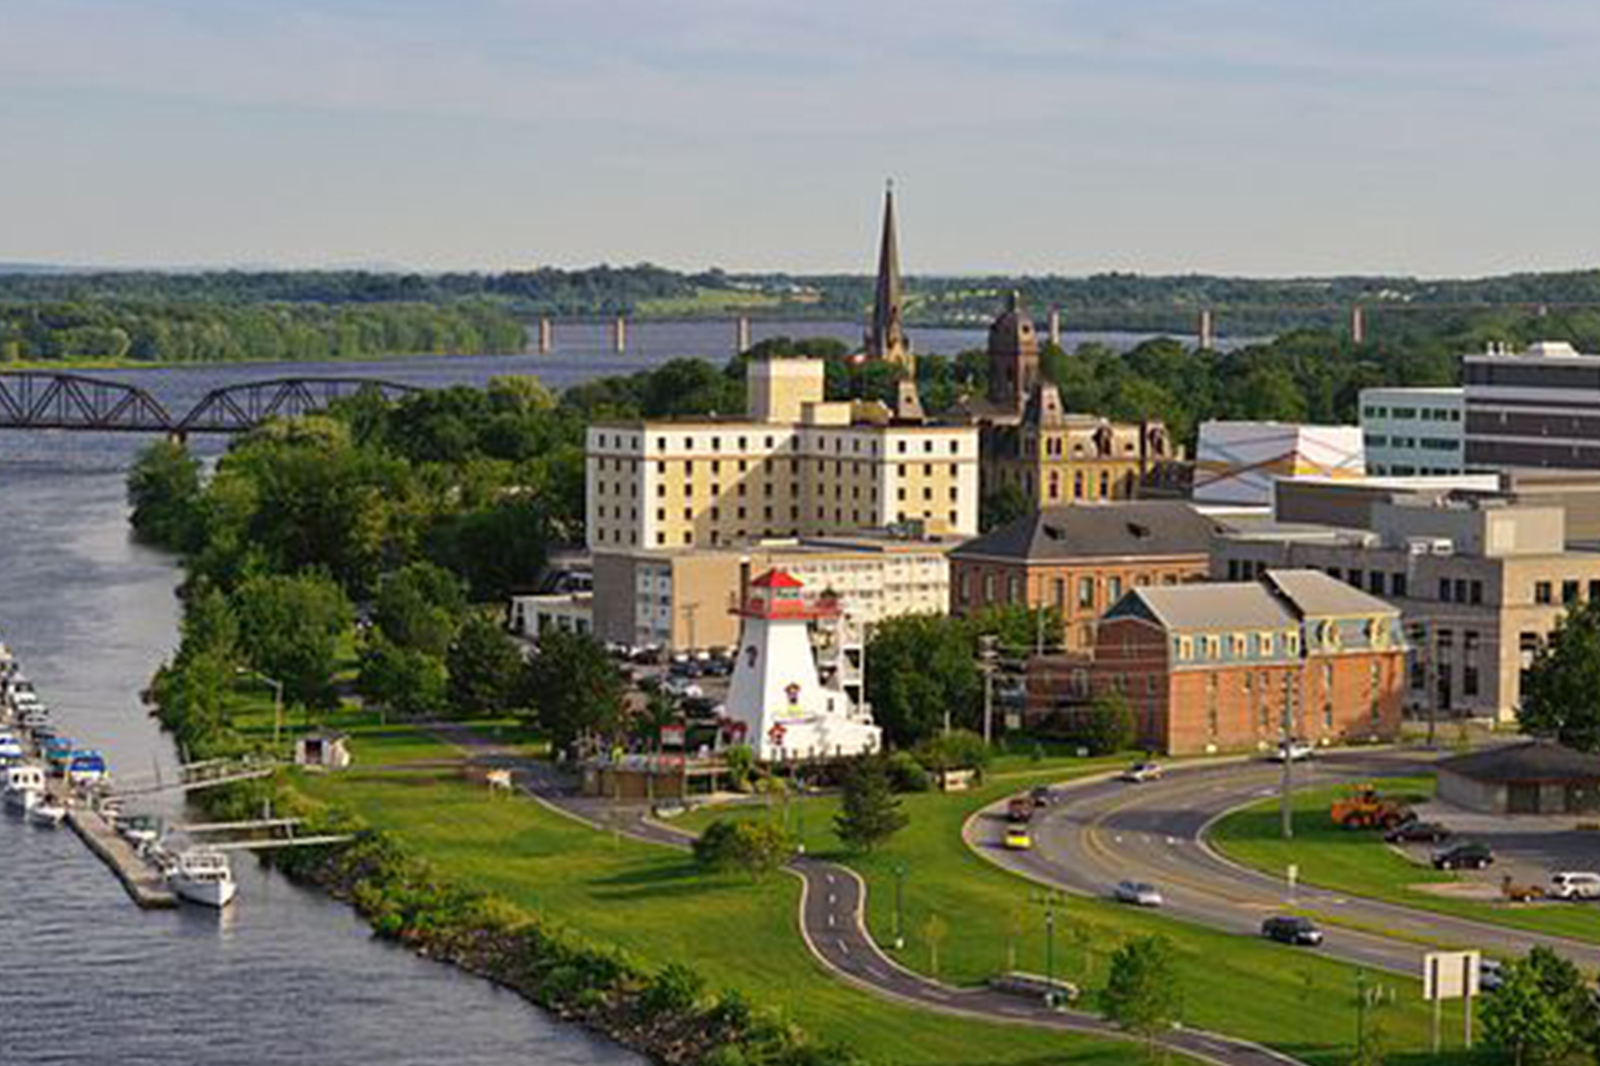 Jill and Derrick move to Fredericton to start working for GIT